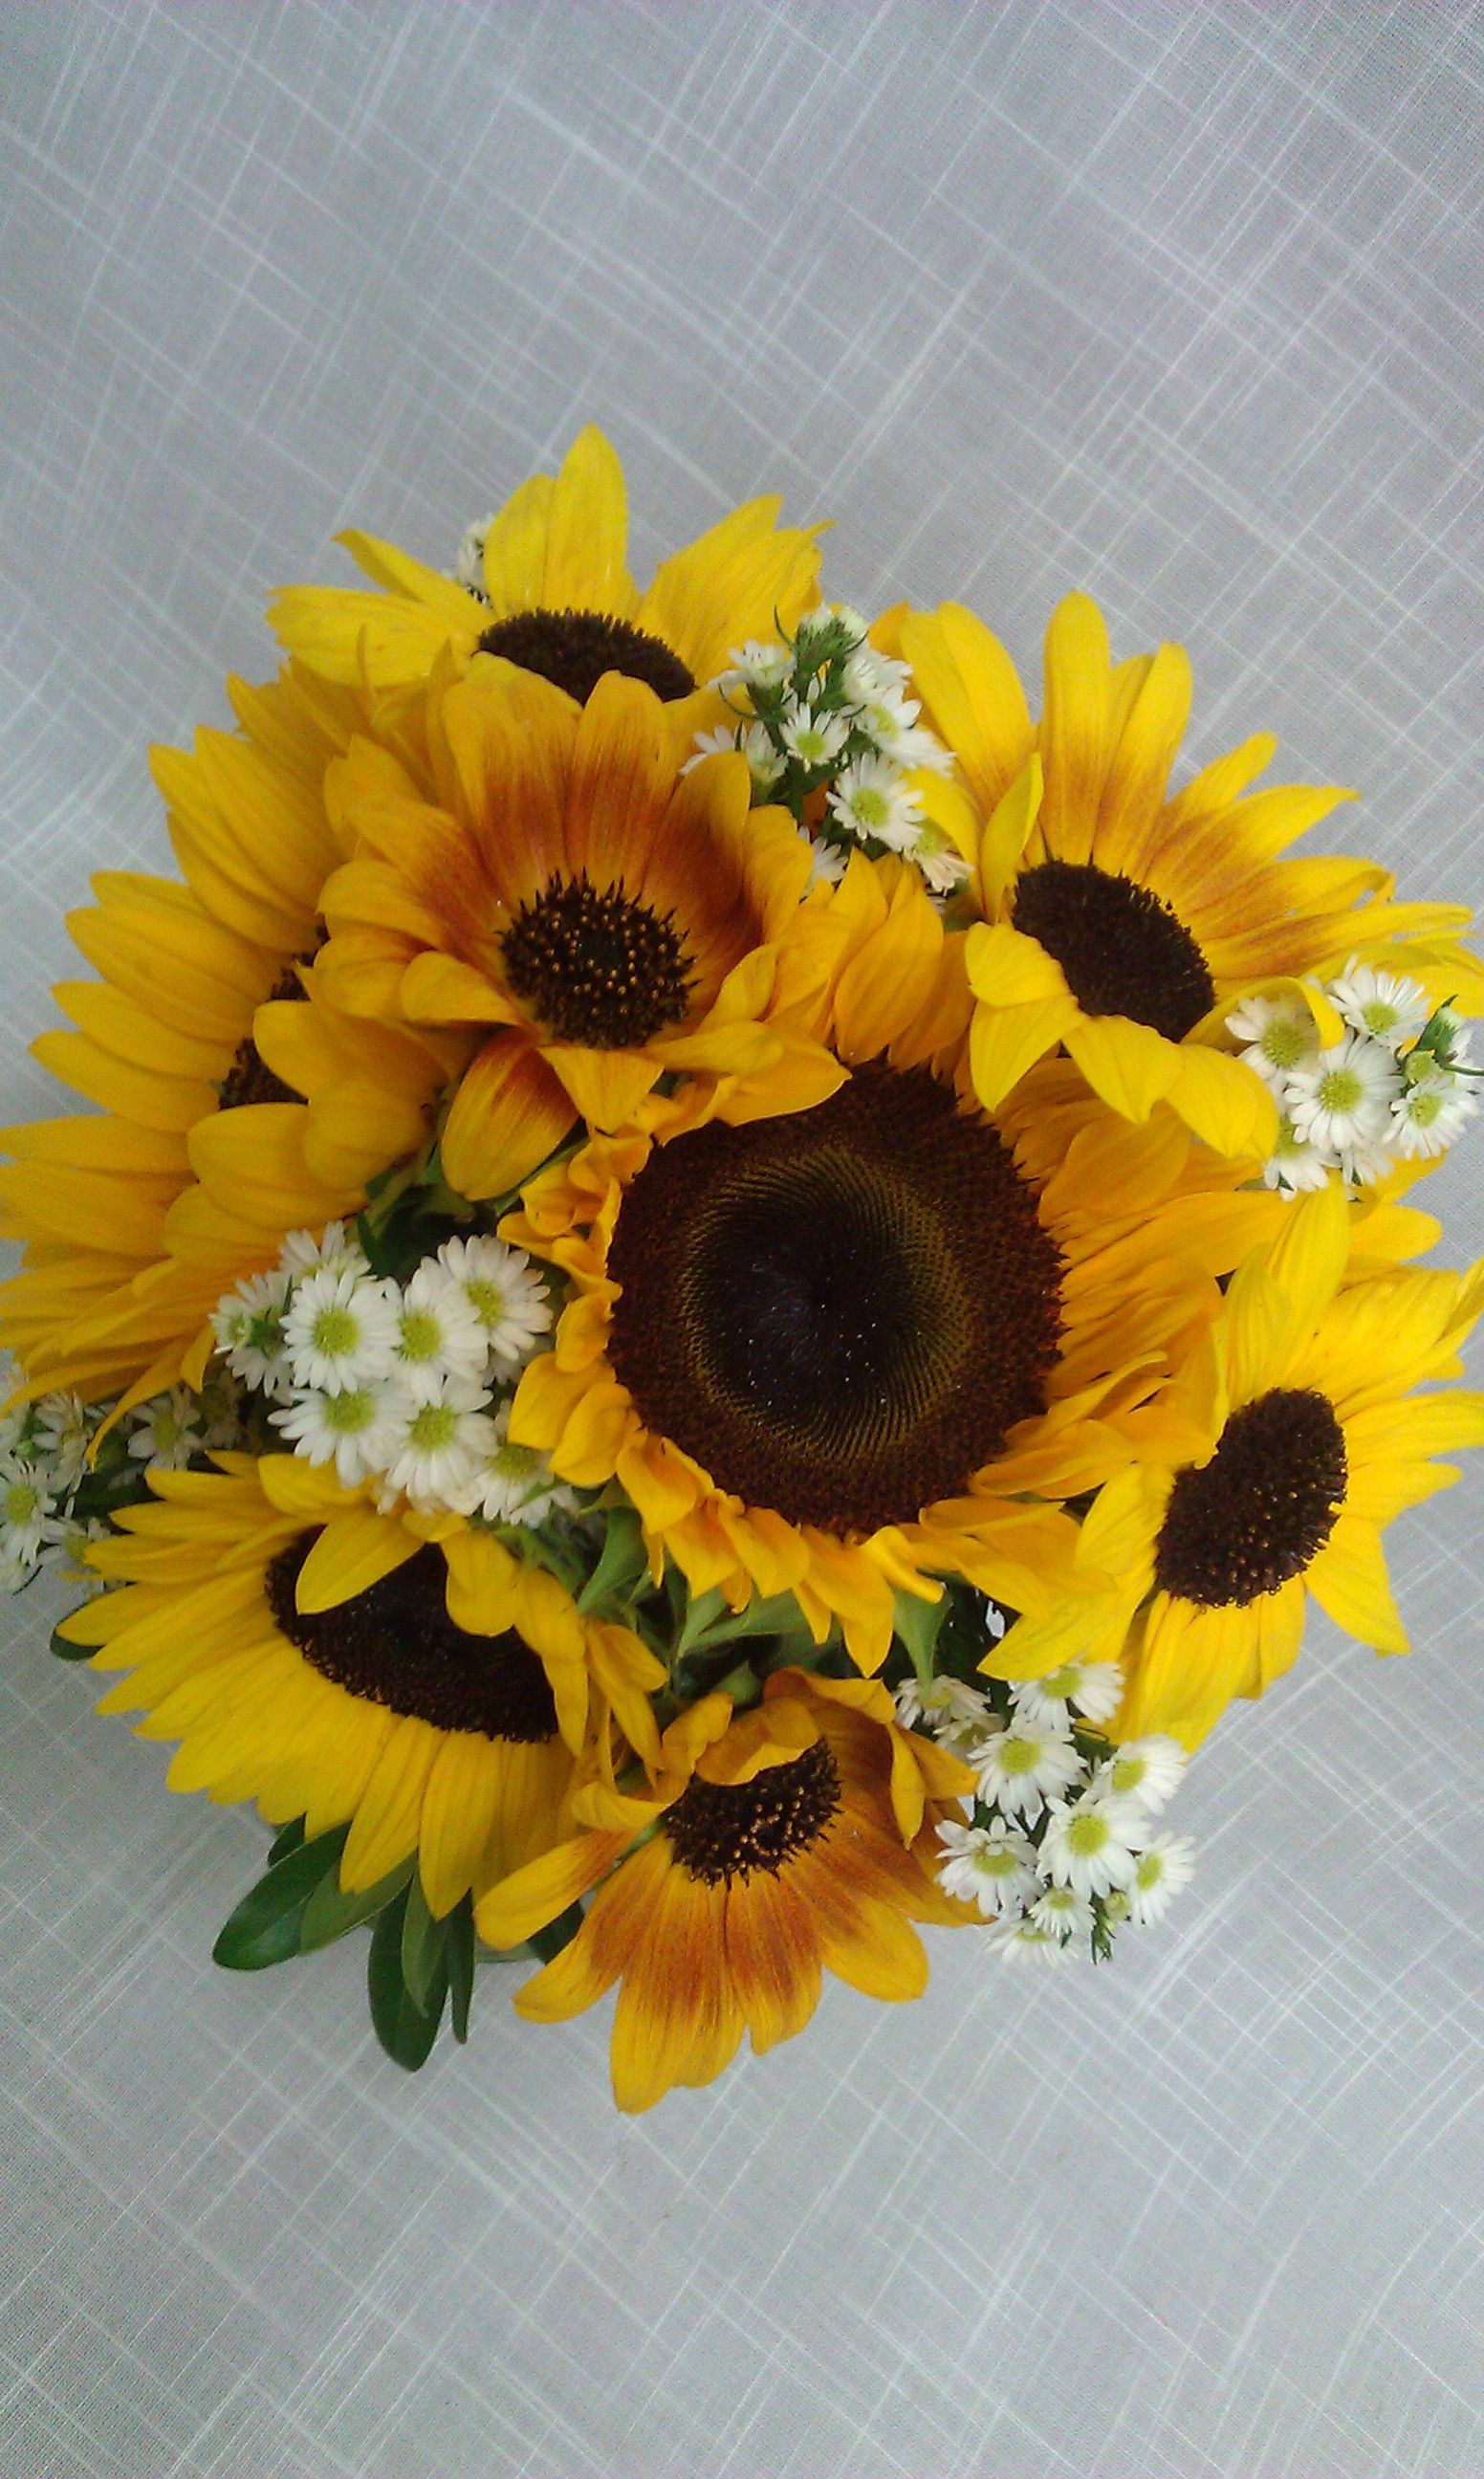 Sunflower Wedding Bouquet accented with white asters